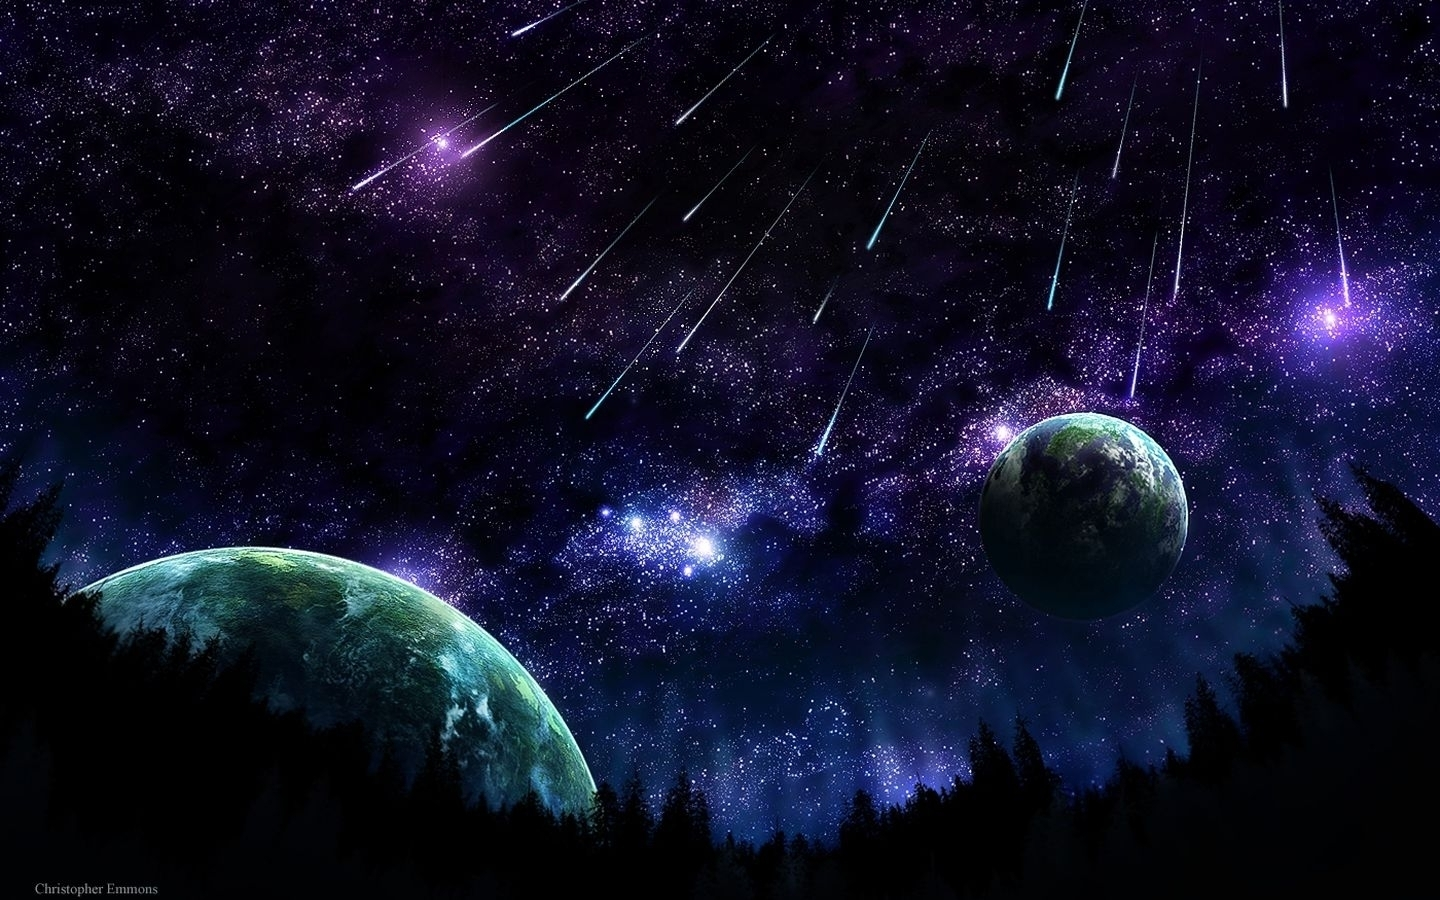 Space Wallpaper Gallery space wallpapers